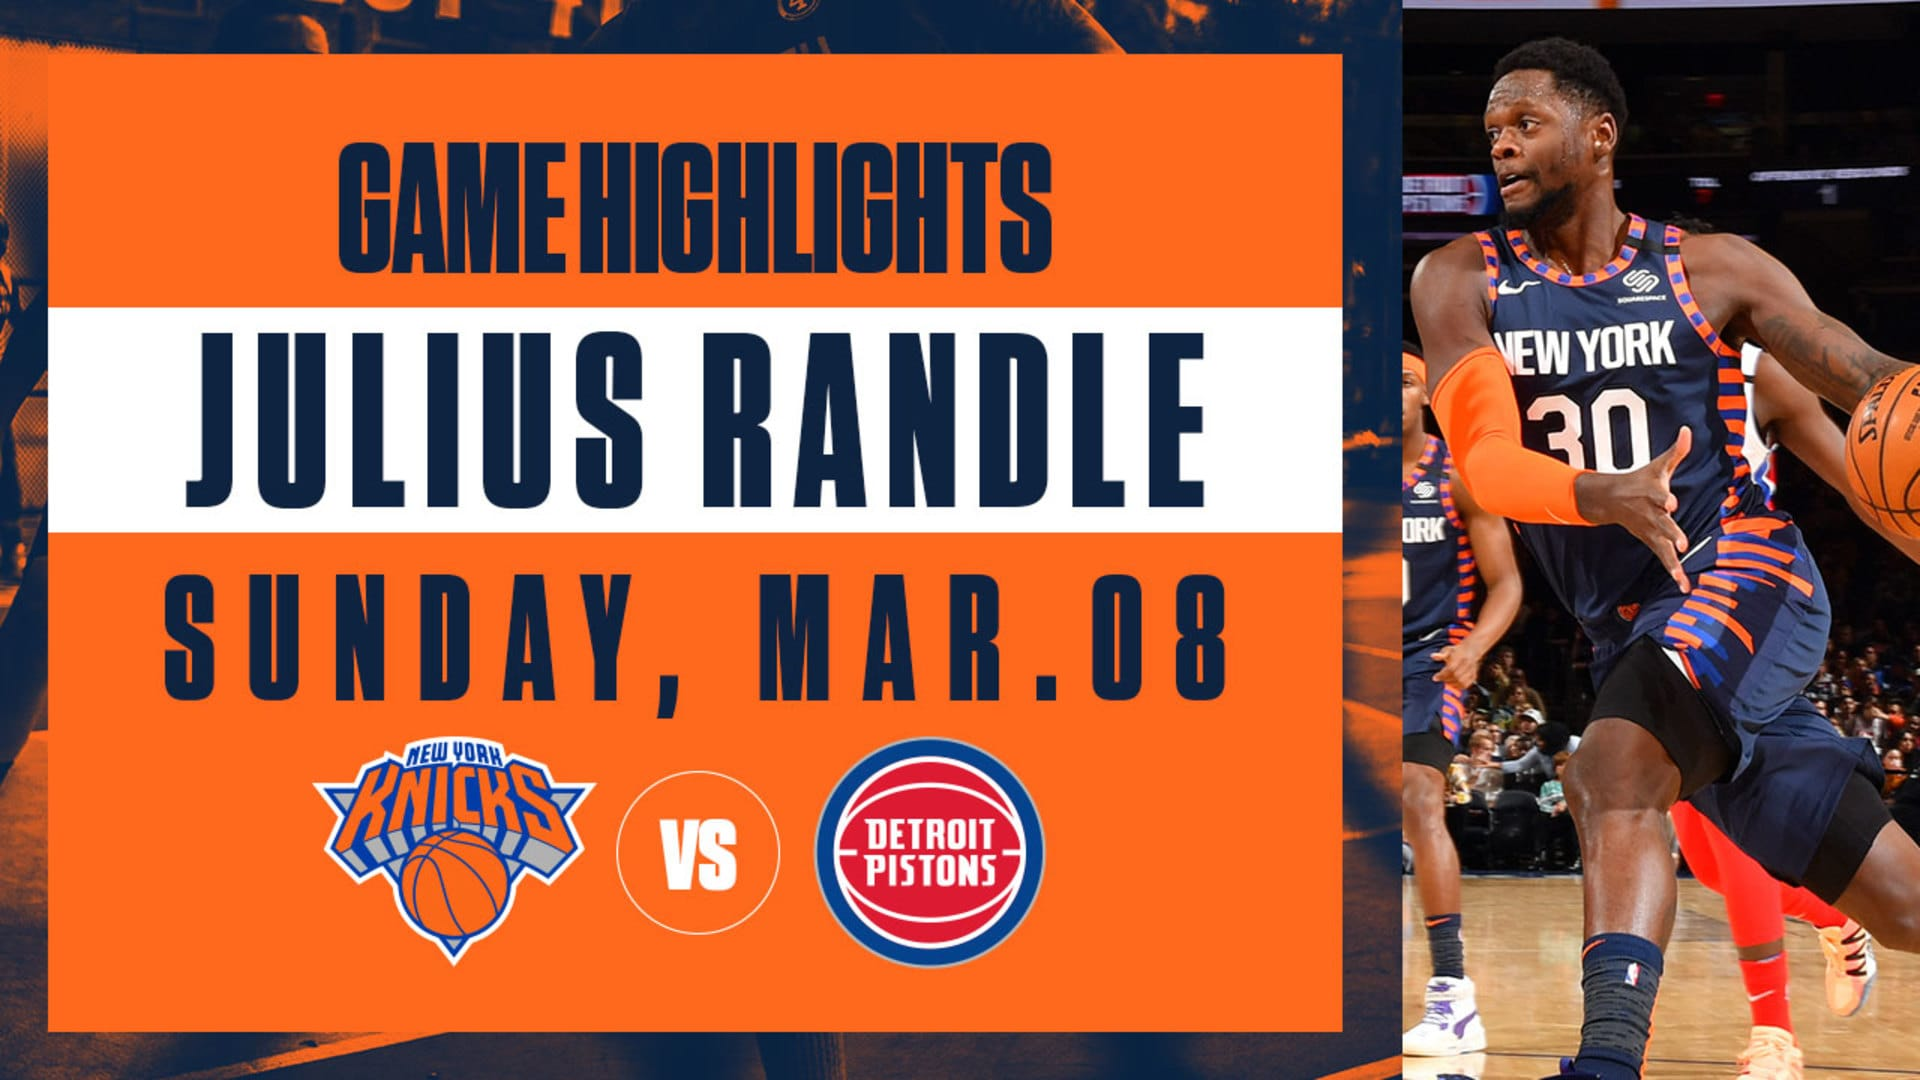 Highlights: Julius Randle (22 Pts / 12 Reb) | Knicks vs. Pistons